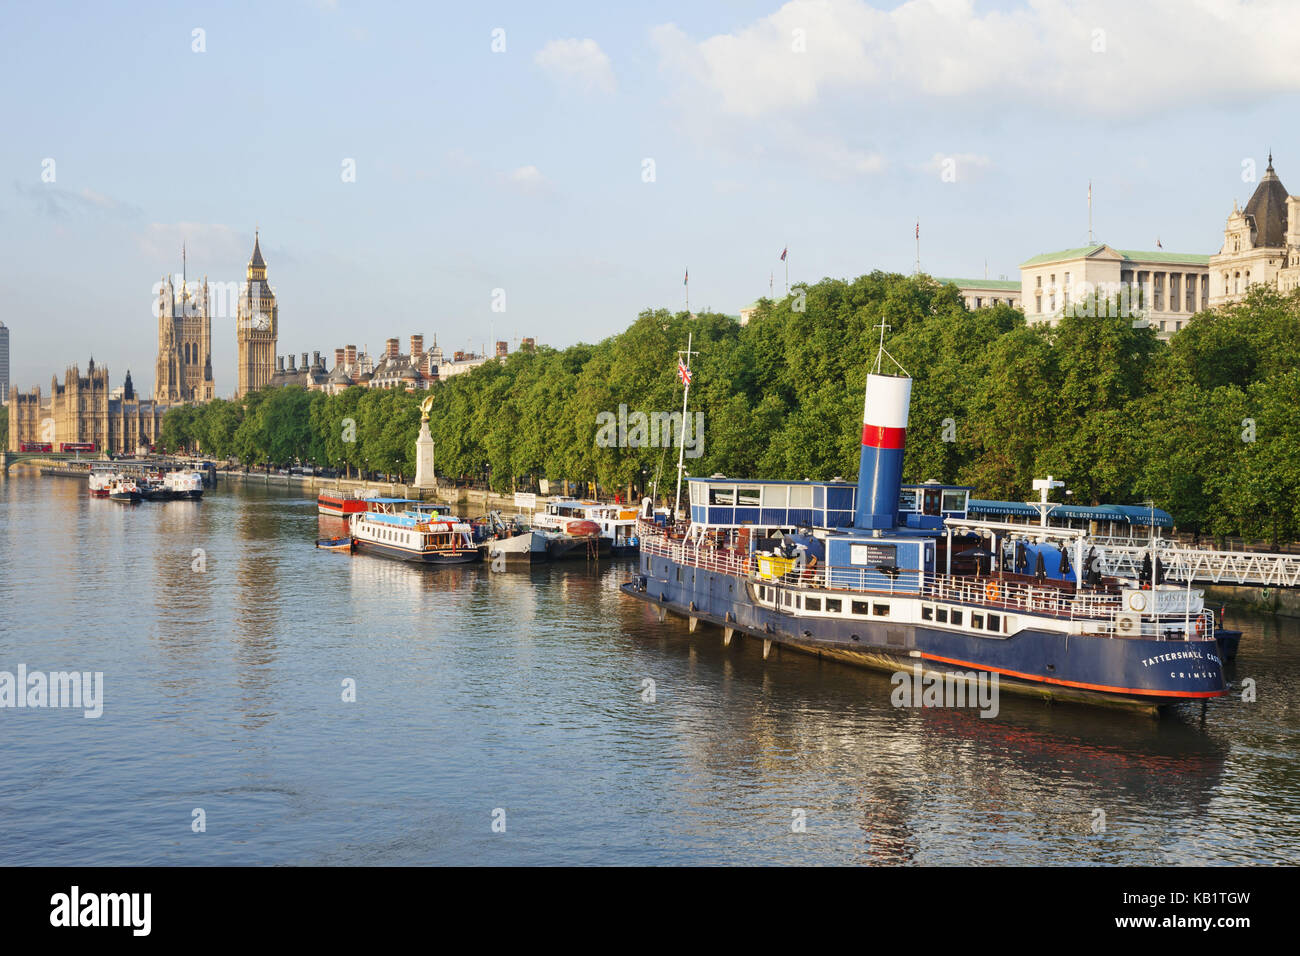 England, London, Victoria rampart, the Thames, ships, - Stock Image